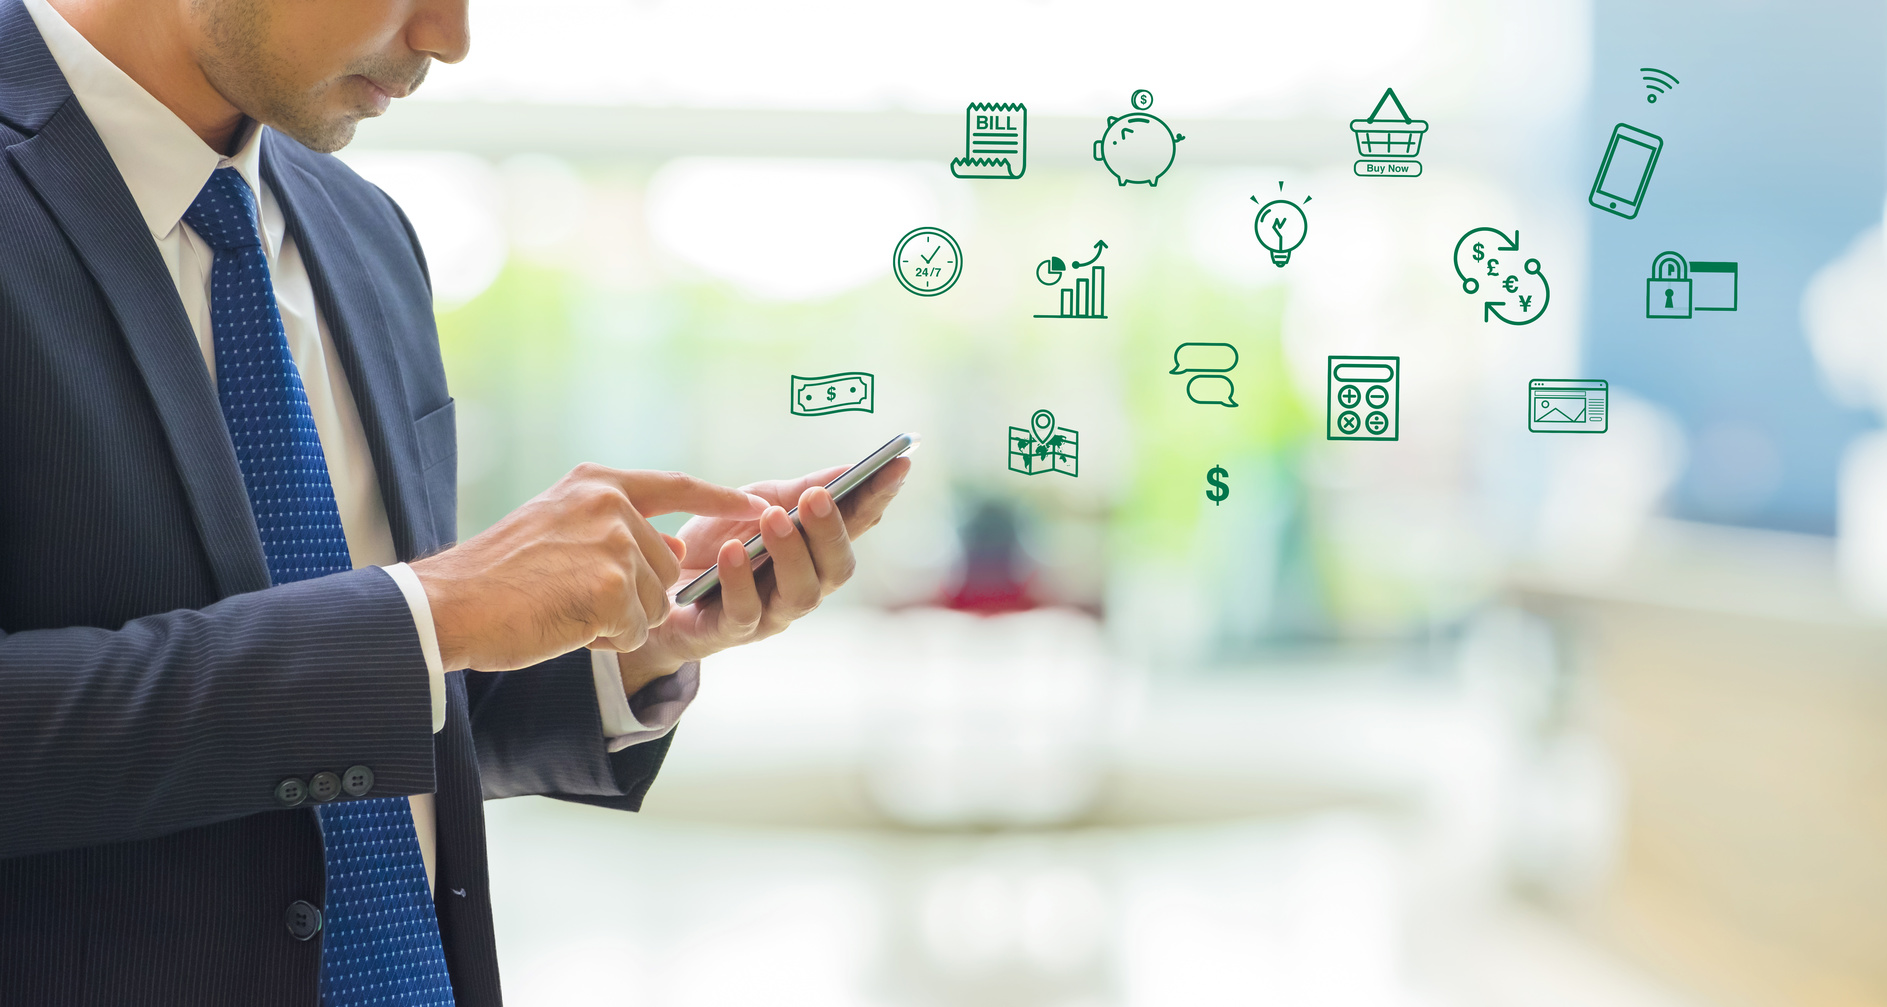 PAPERLESS TECHNOLOGY FOR EFFORTLESS TRANSACTIONS